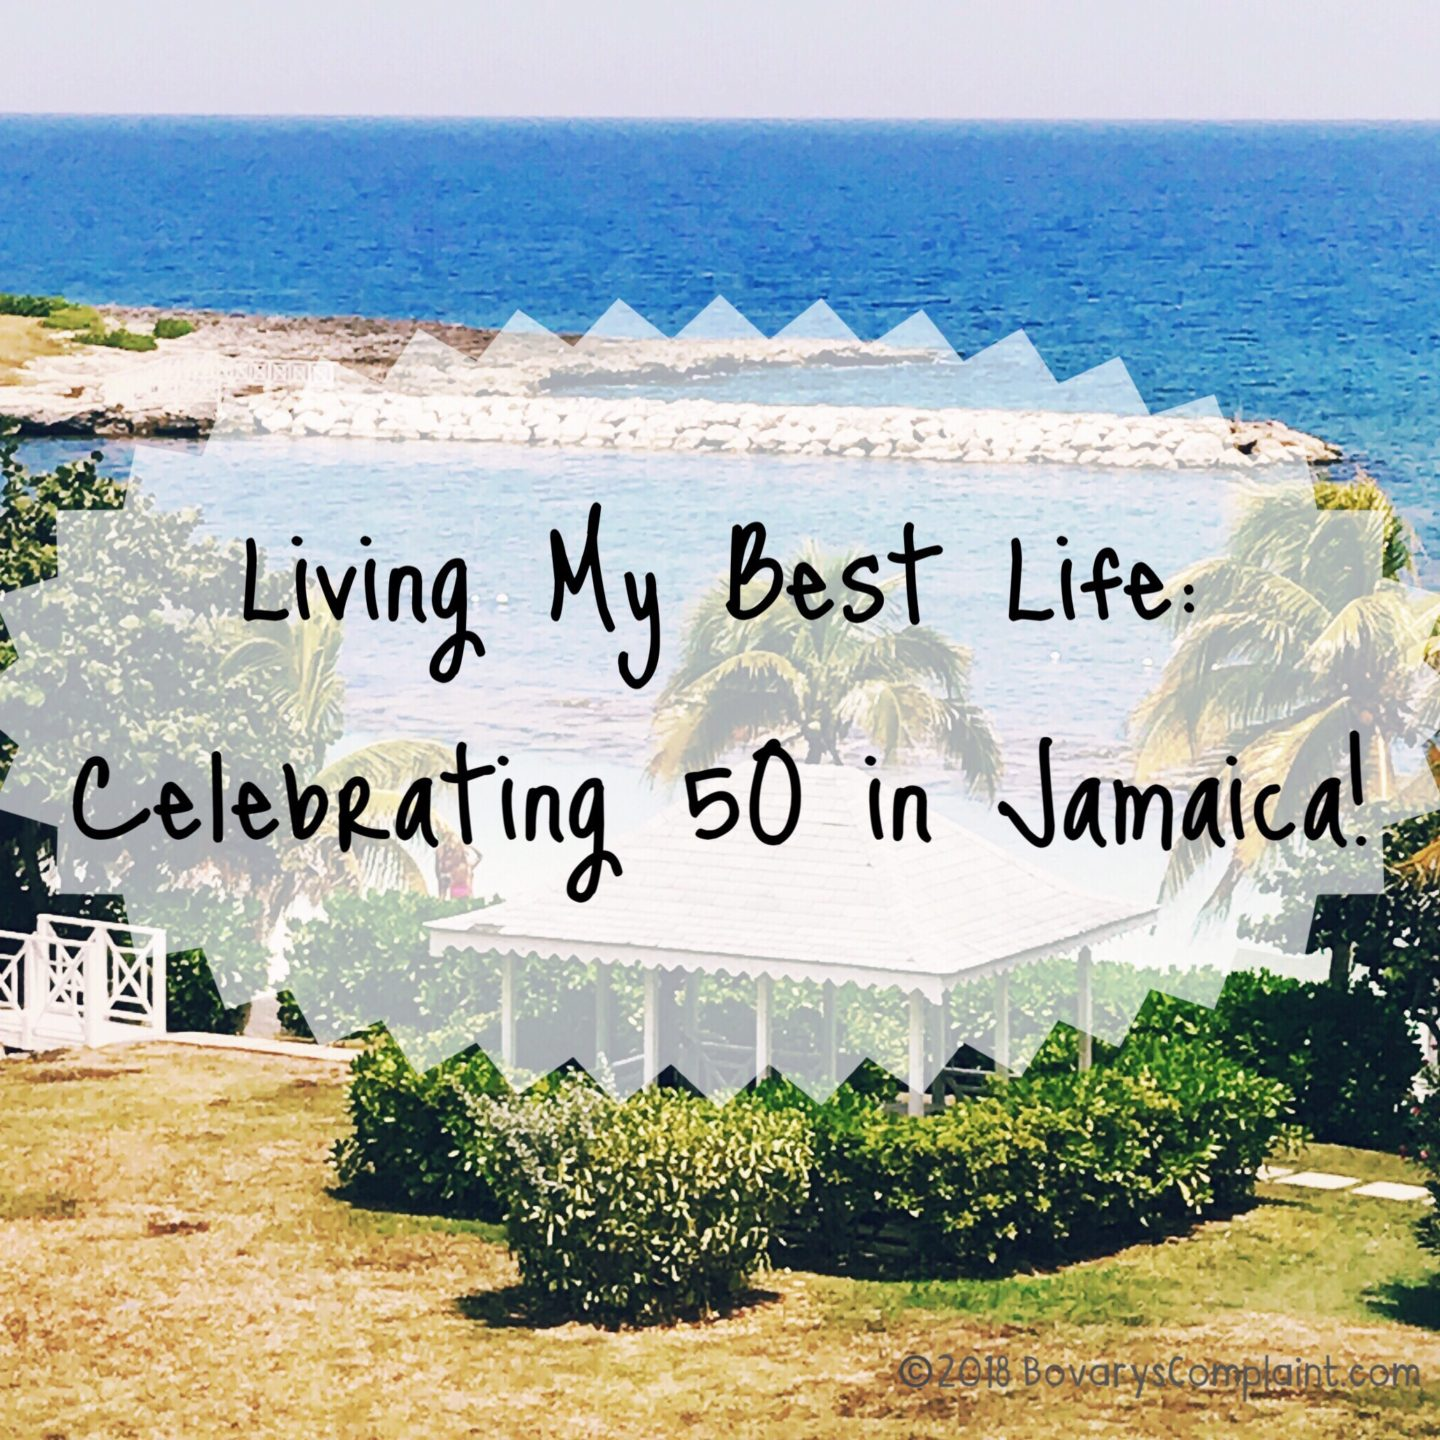 Living My Best Life: Celebrating 50 in Jamaica!